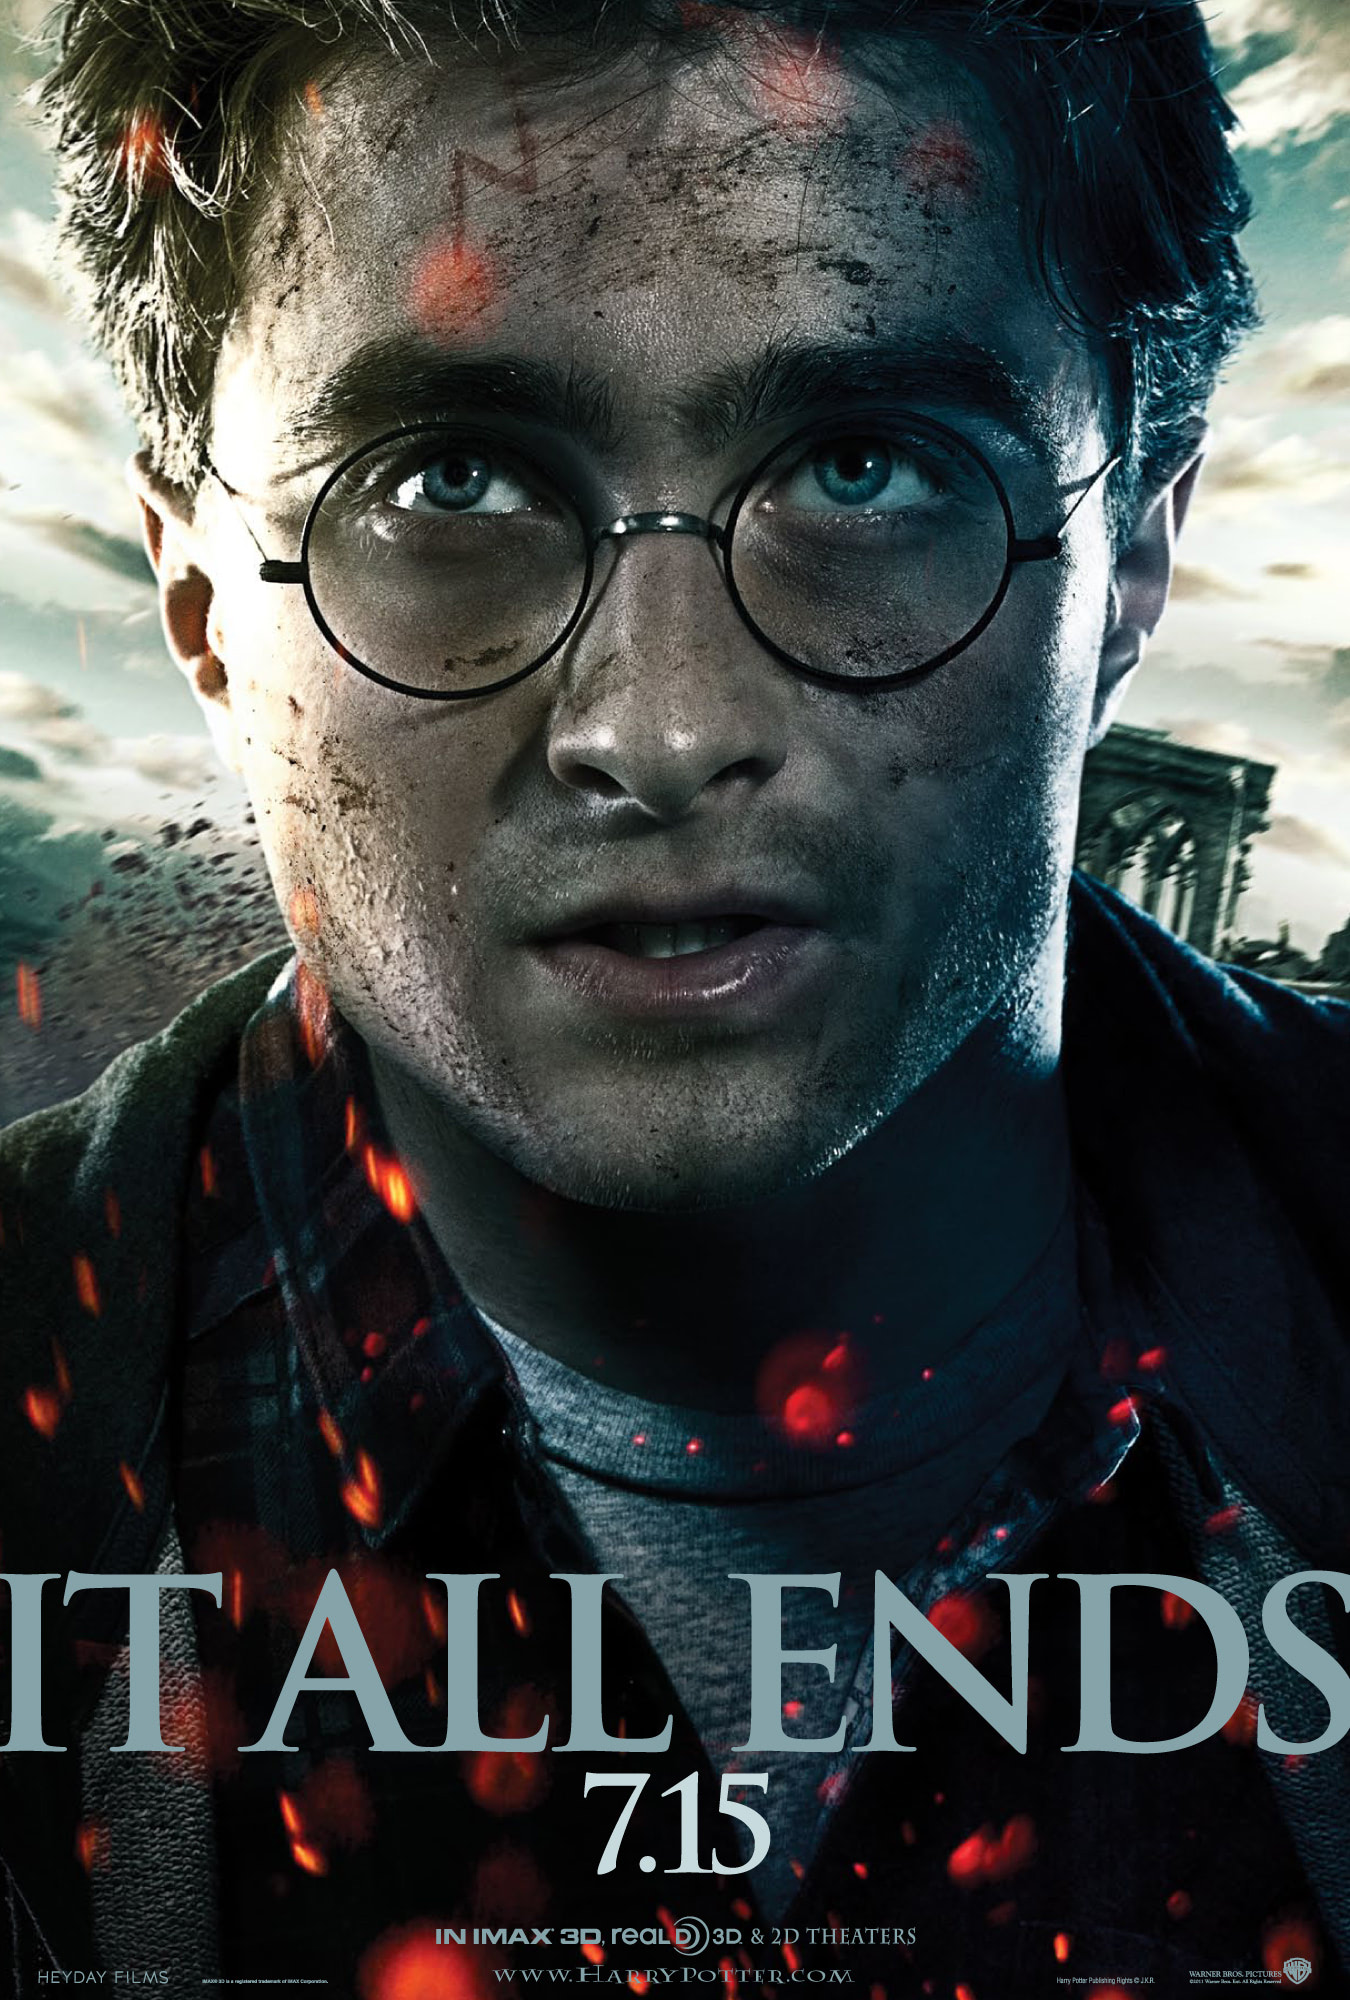 'Deathly Hallows: Part 2' Harry poster #2